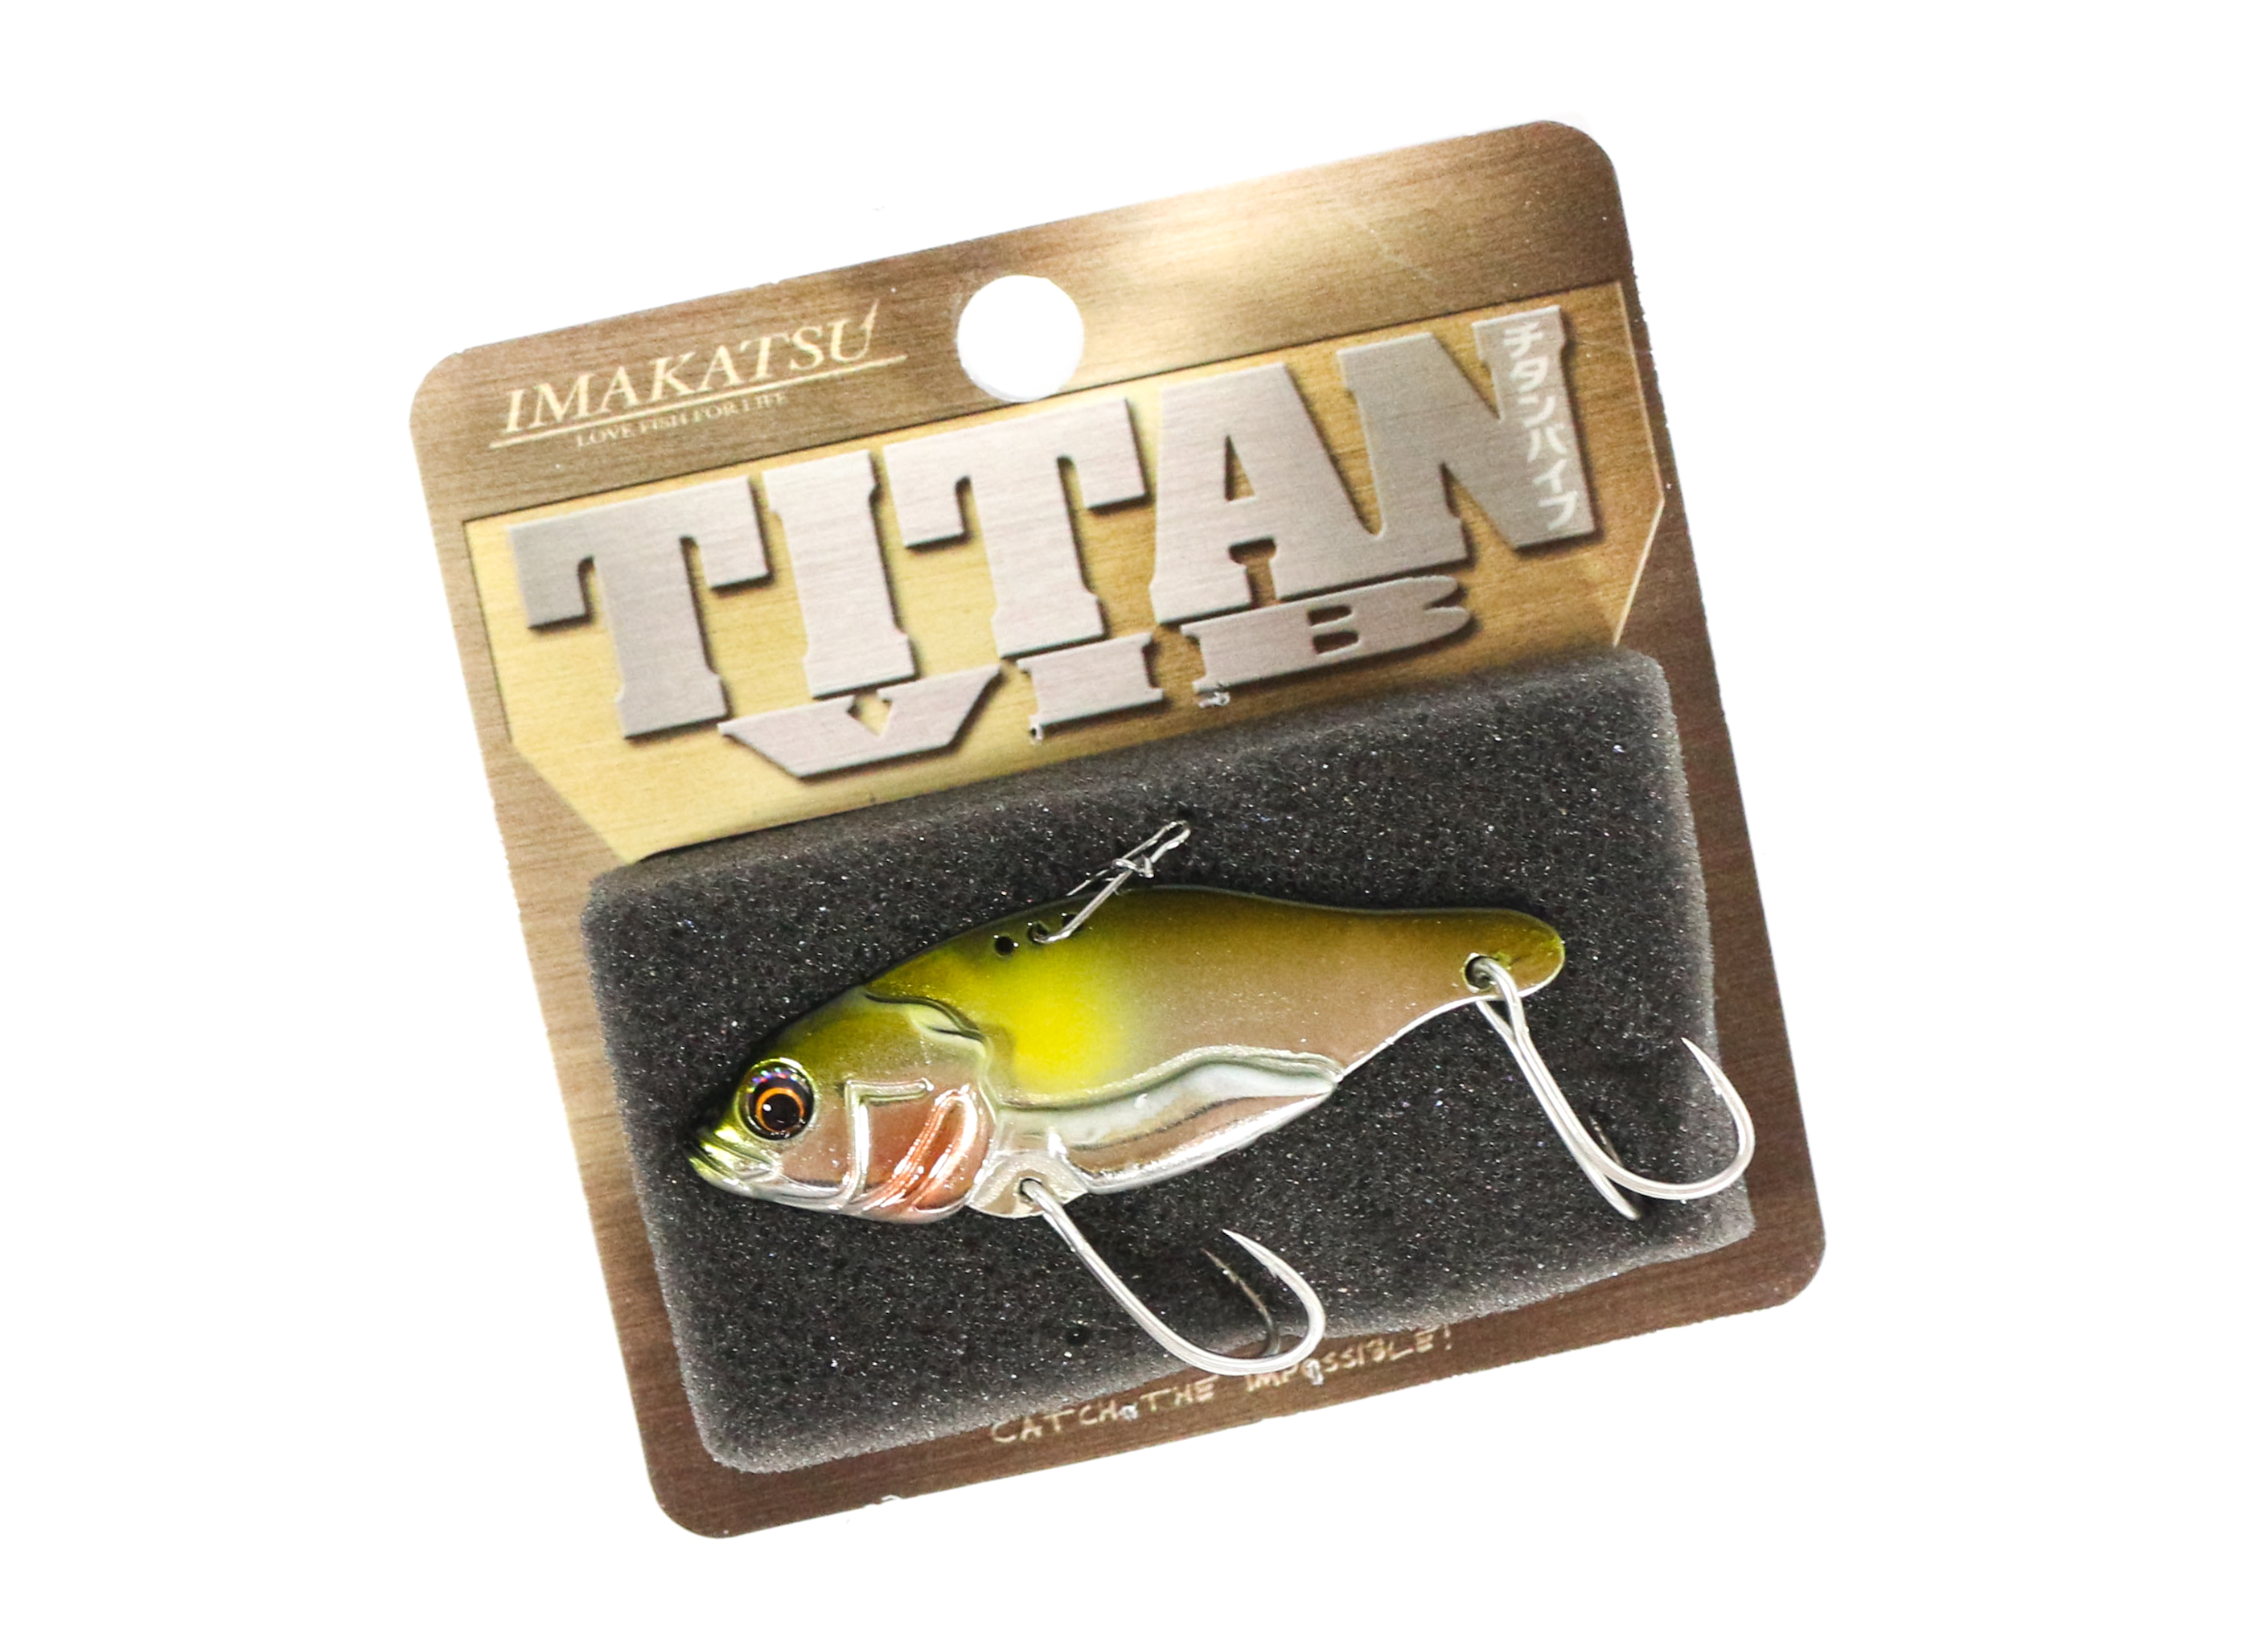 Sale Imakatsu Titan Vib Metal Vibration 9 grams Sinking Lure MV-03 (5179)